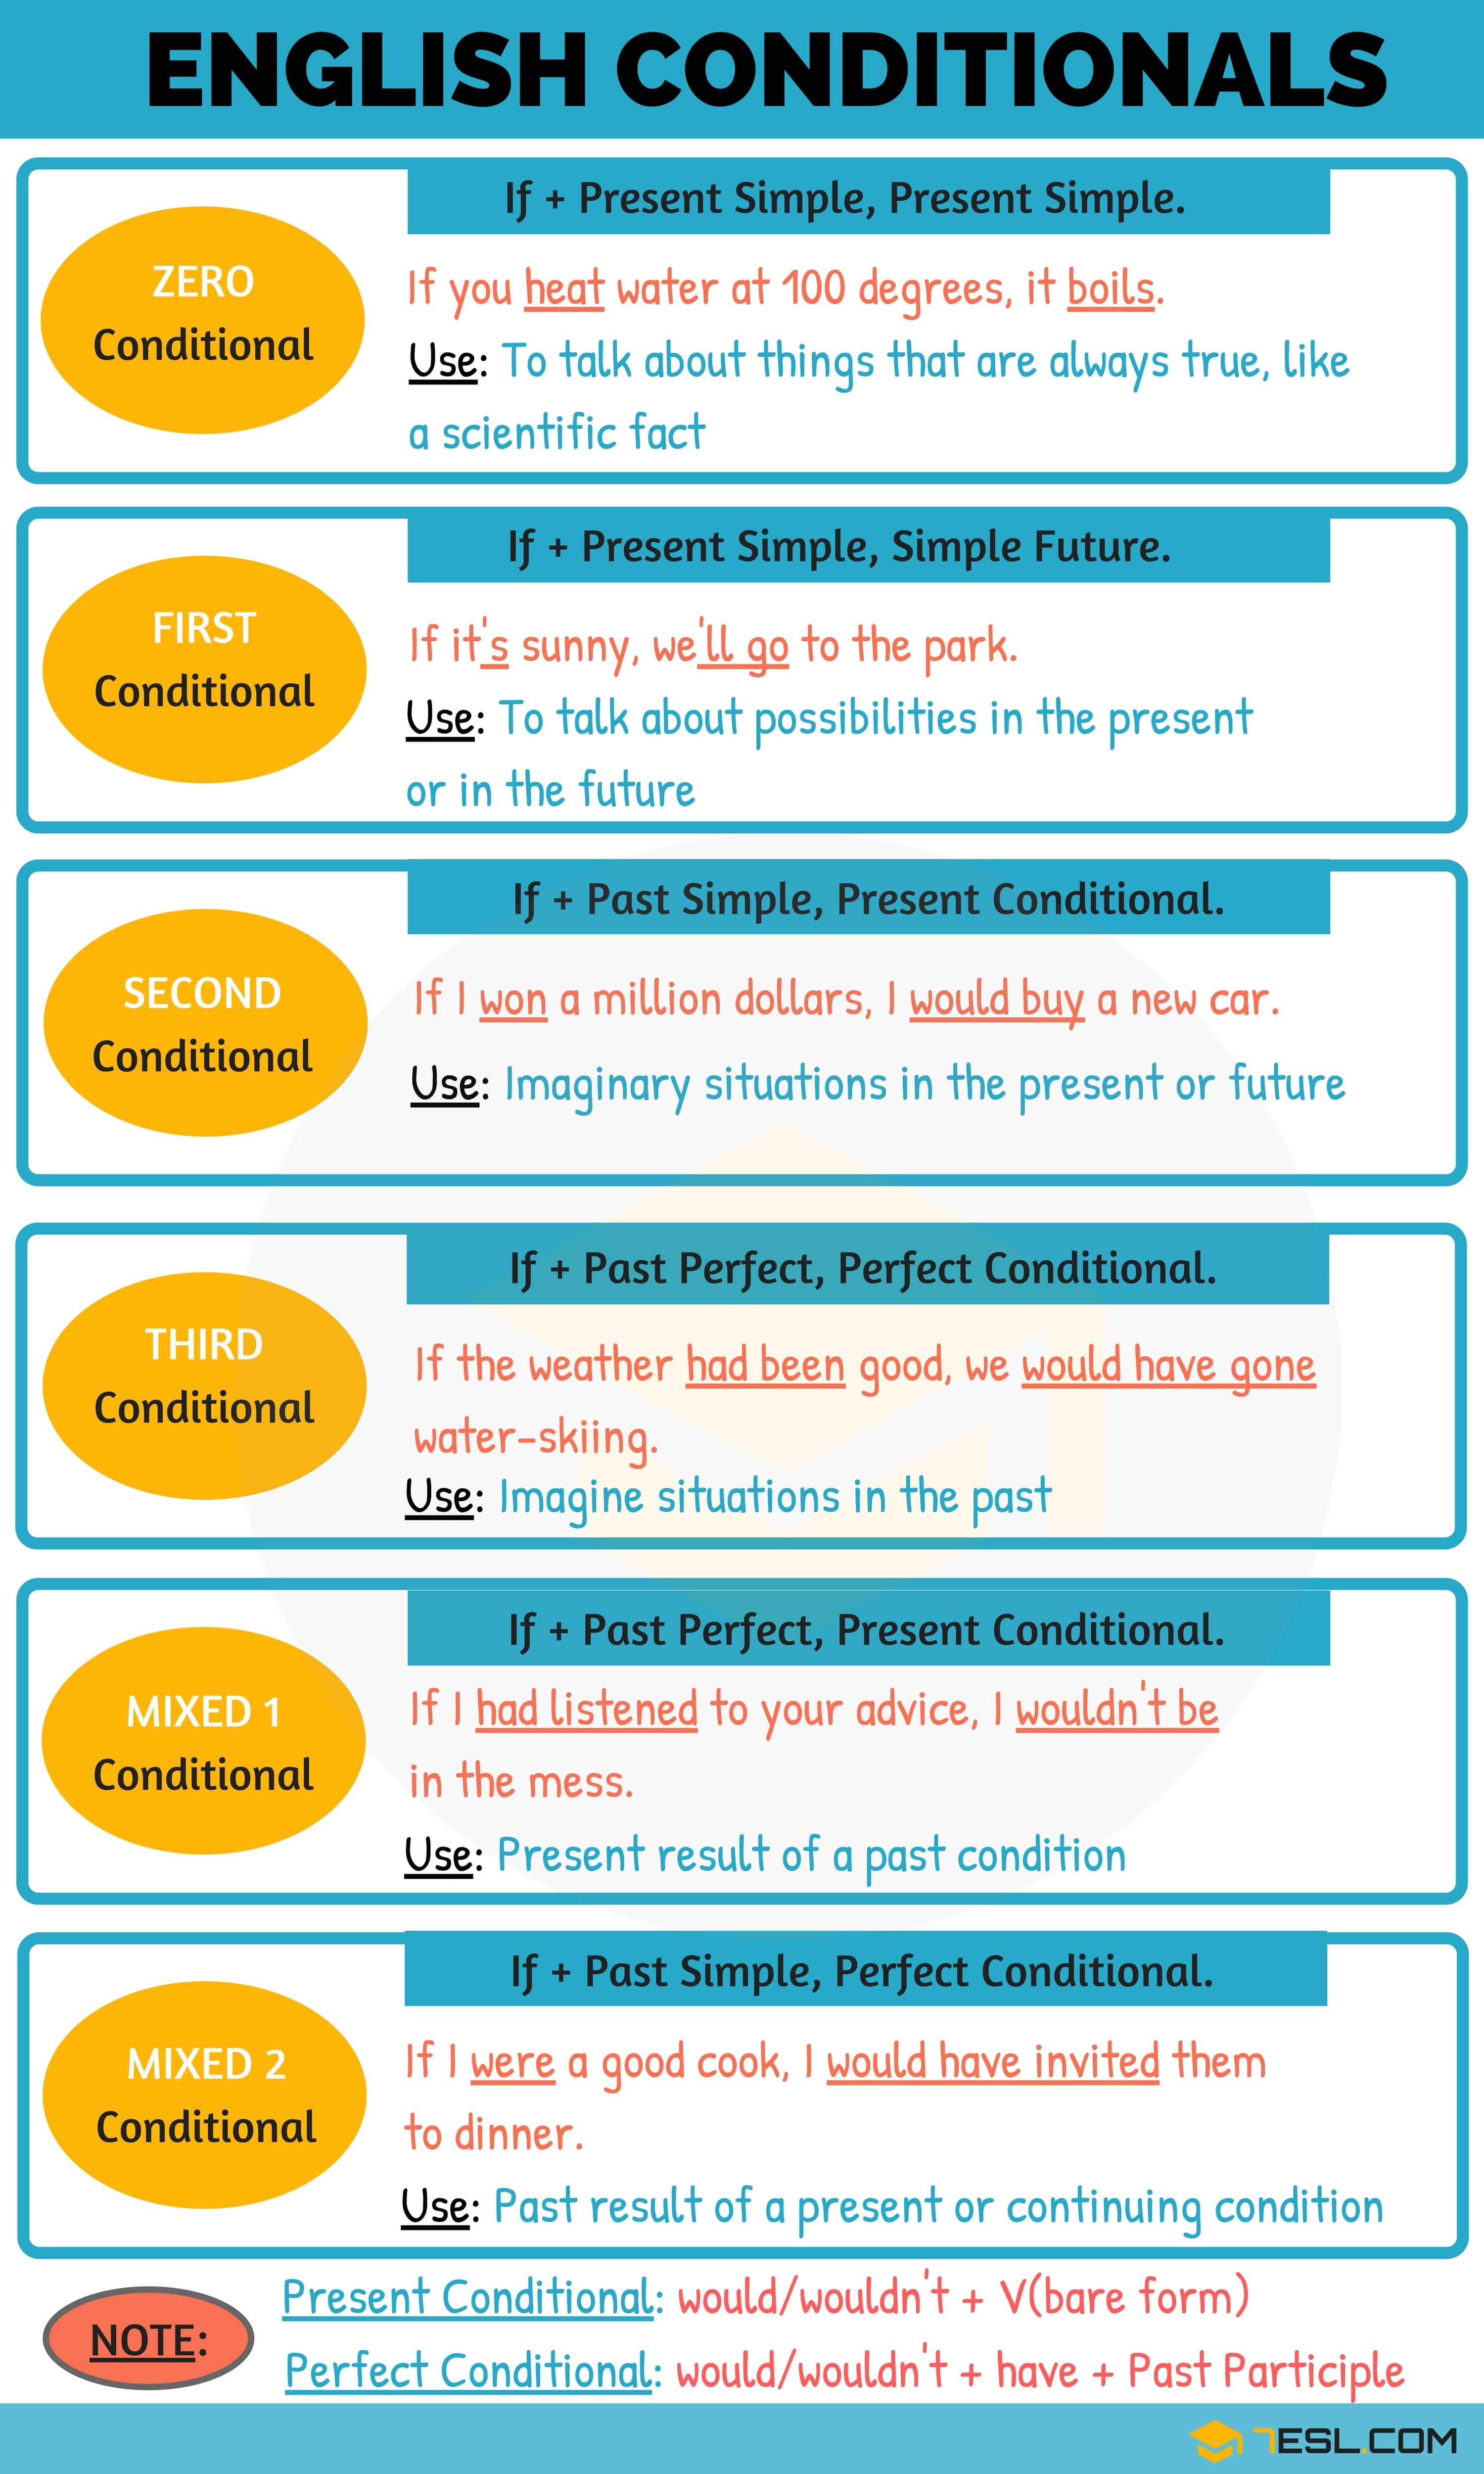 Conditionals: 05 Types of Conditionals in English